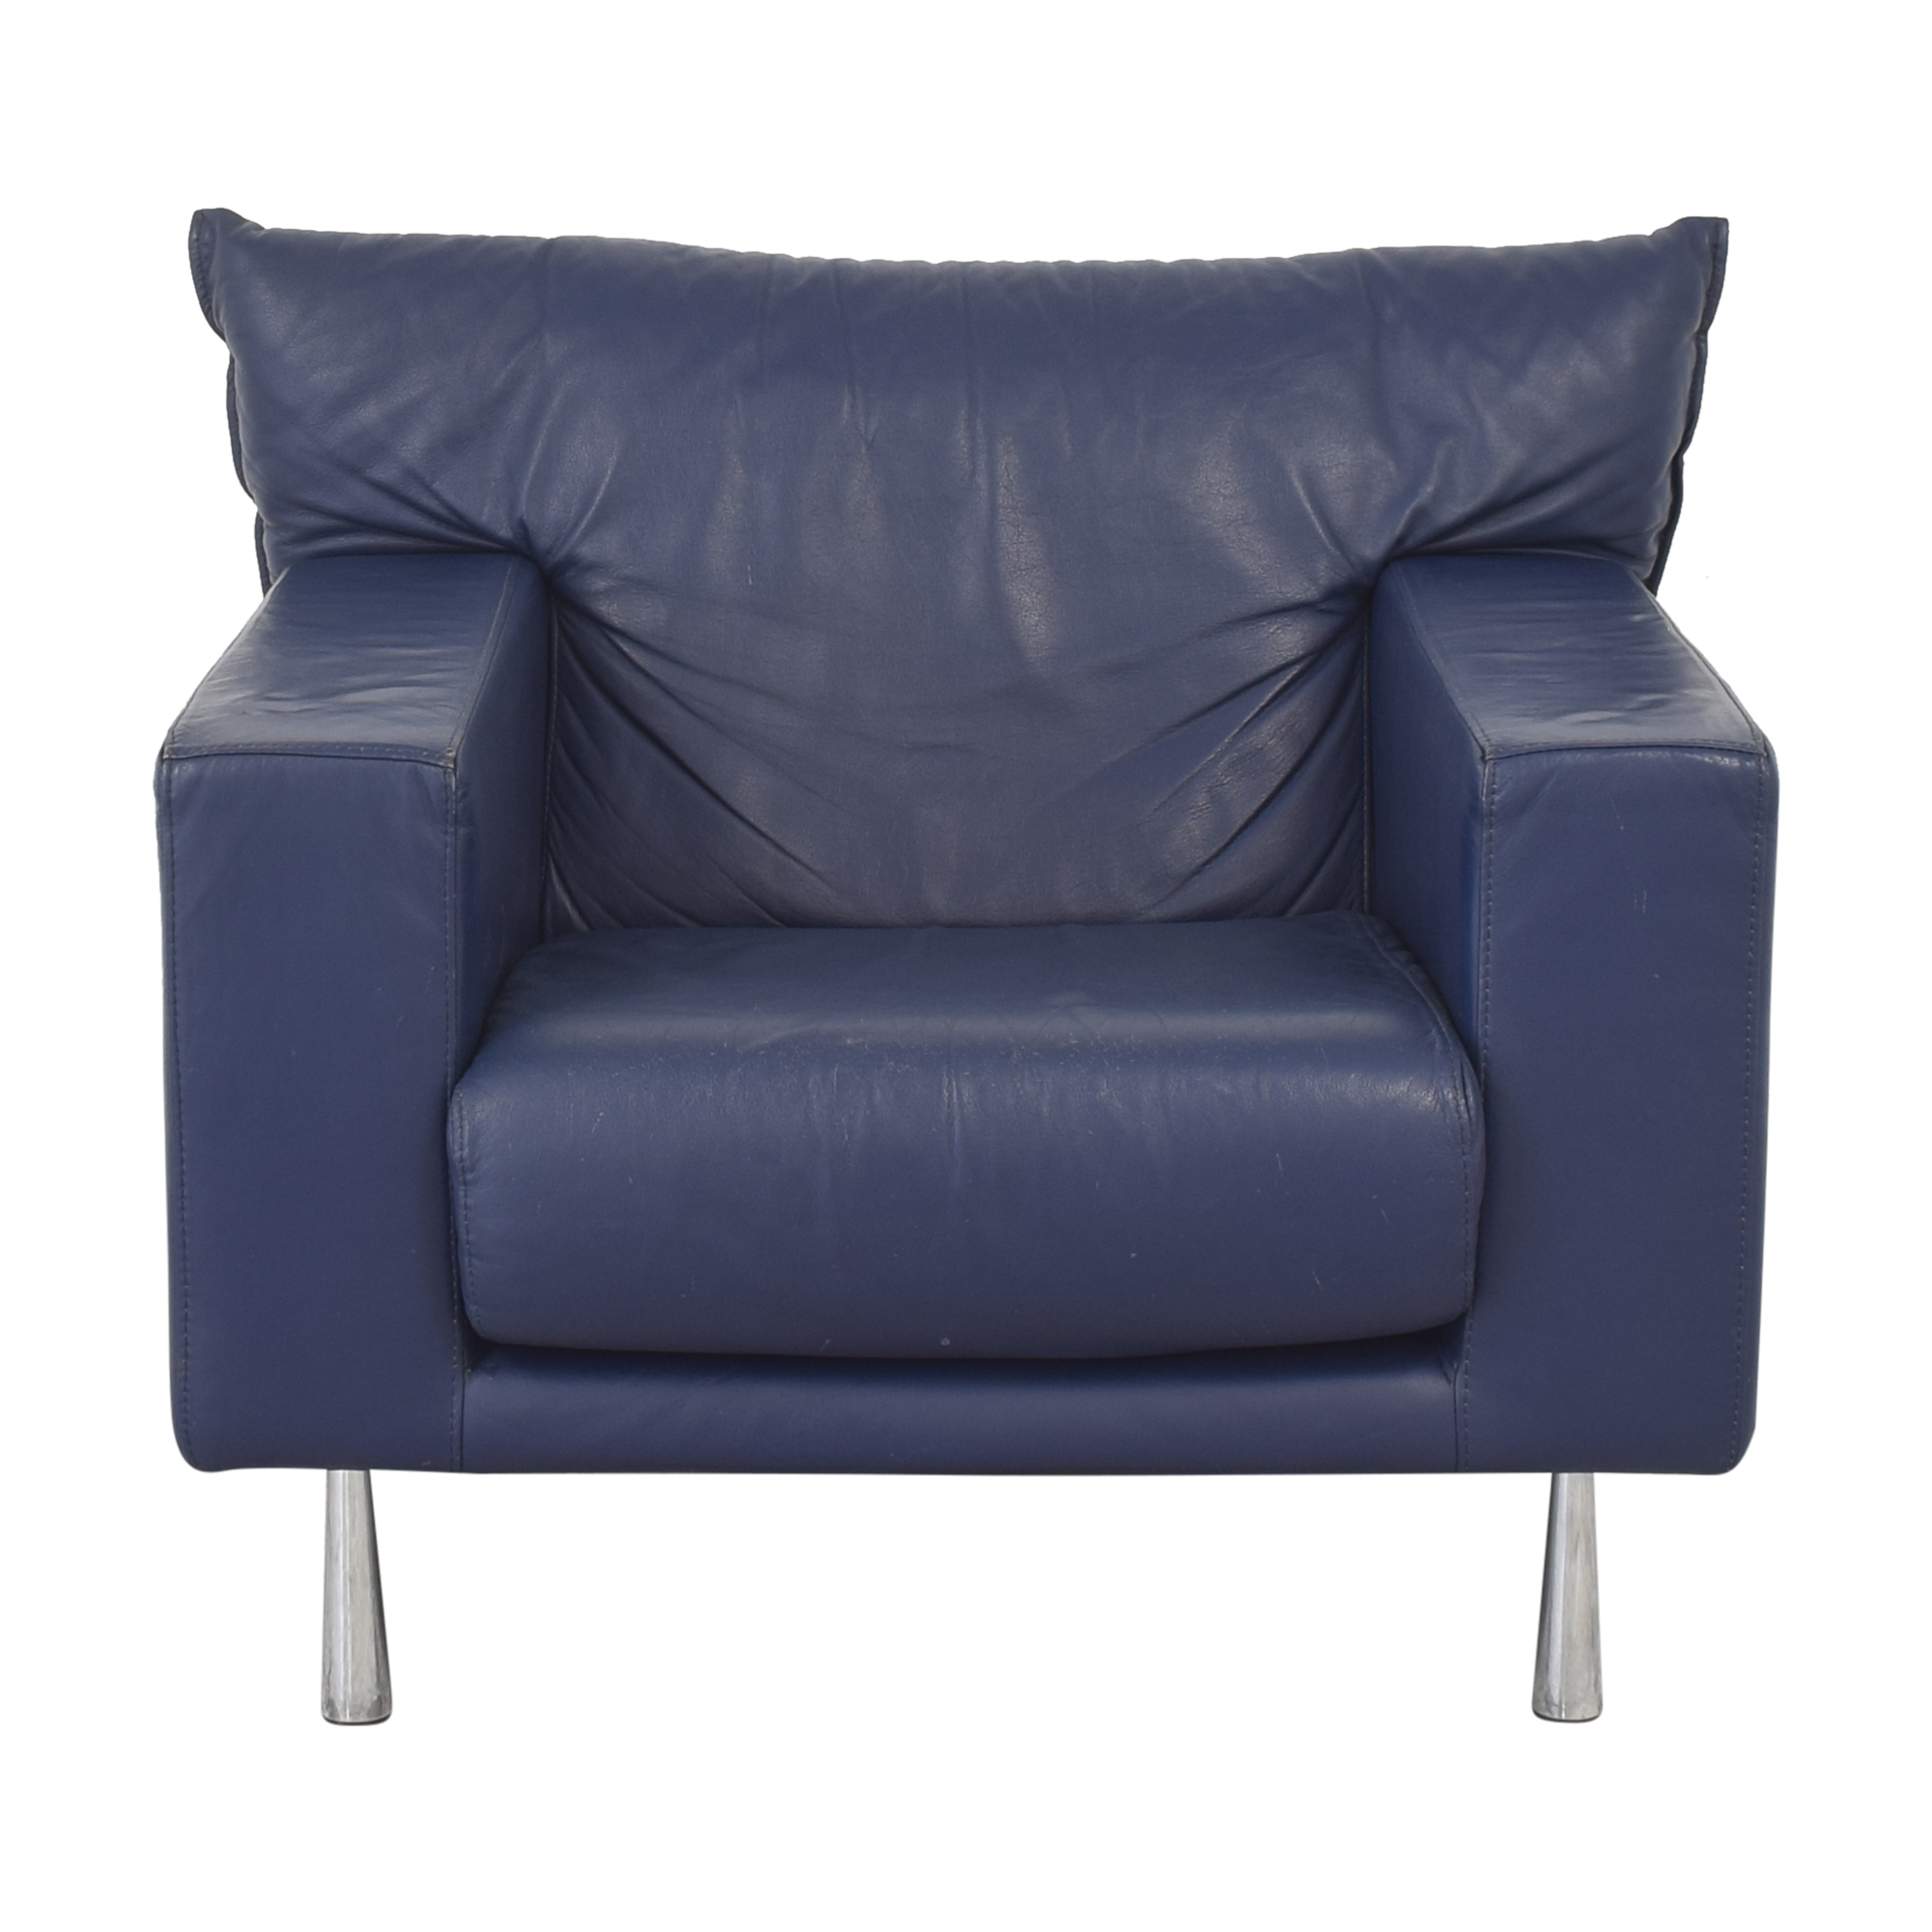 Maurice Villency Modern Style Club Chair